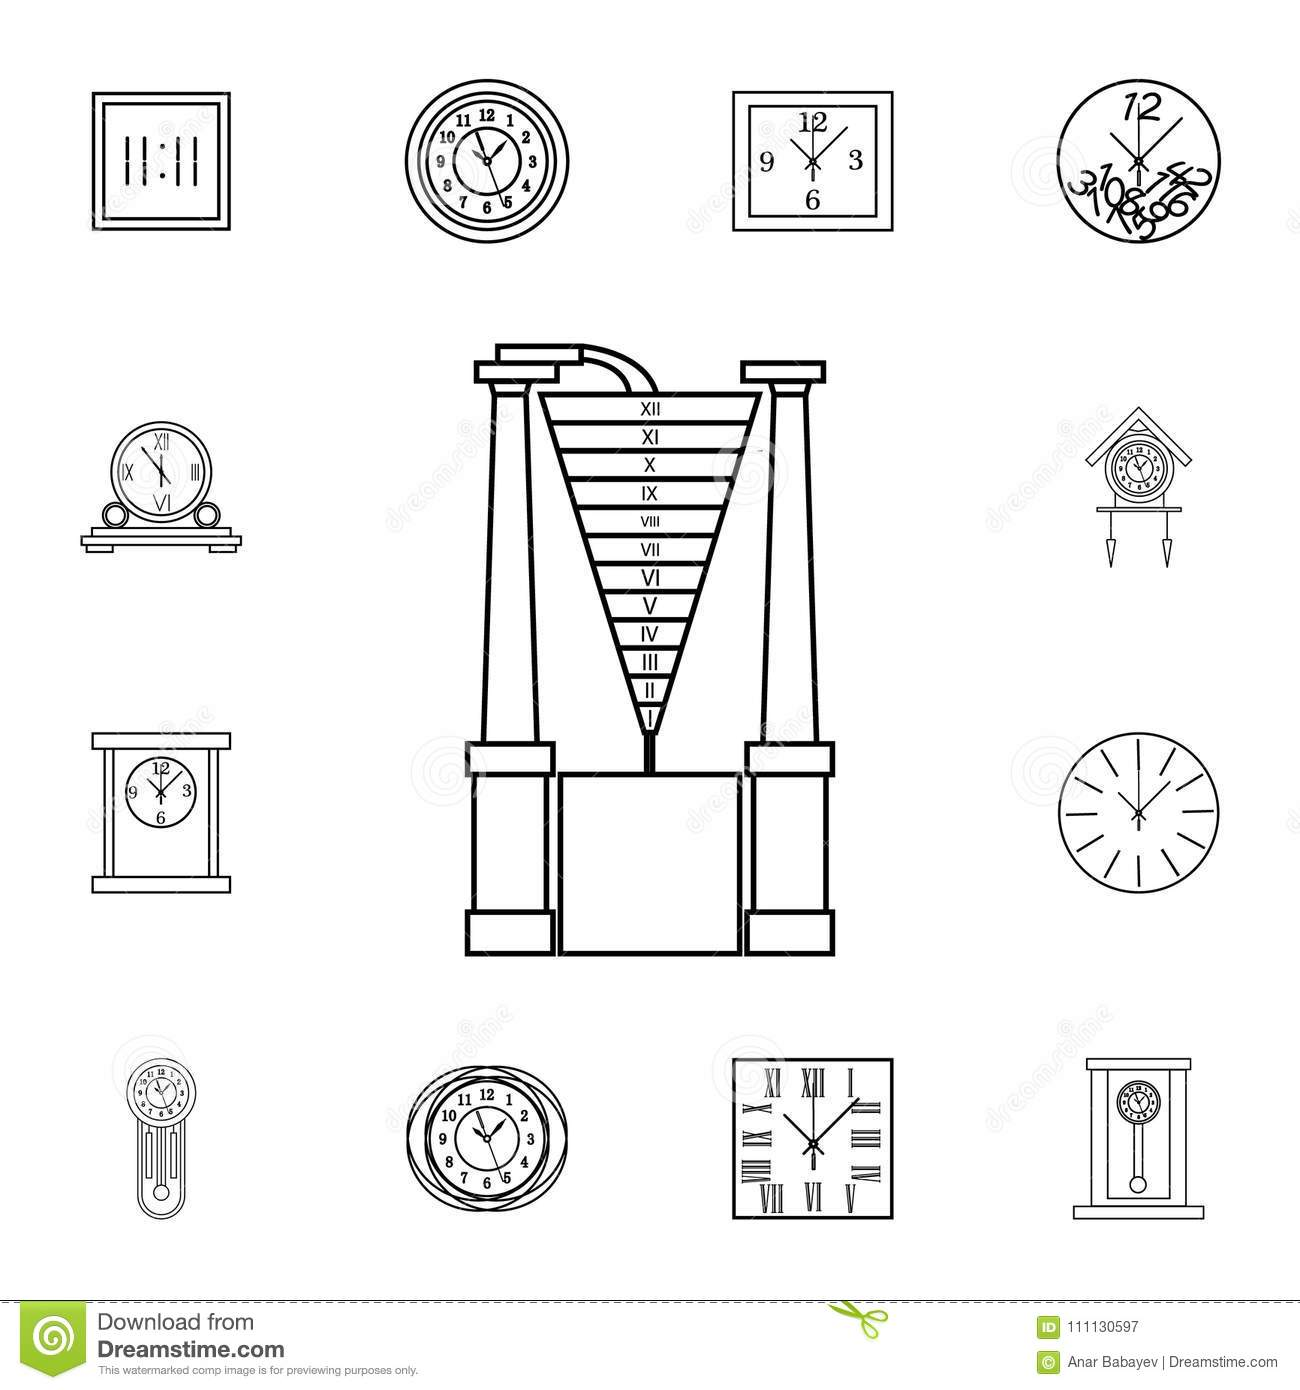 hight resolution of water clock line icon clock icon premium quality graphic design signs symbols collection simple icon for websites web design mobile app on white